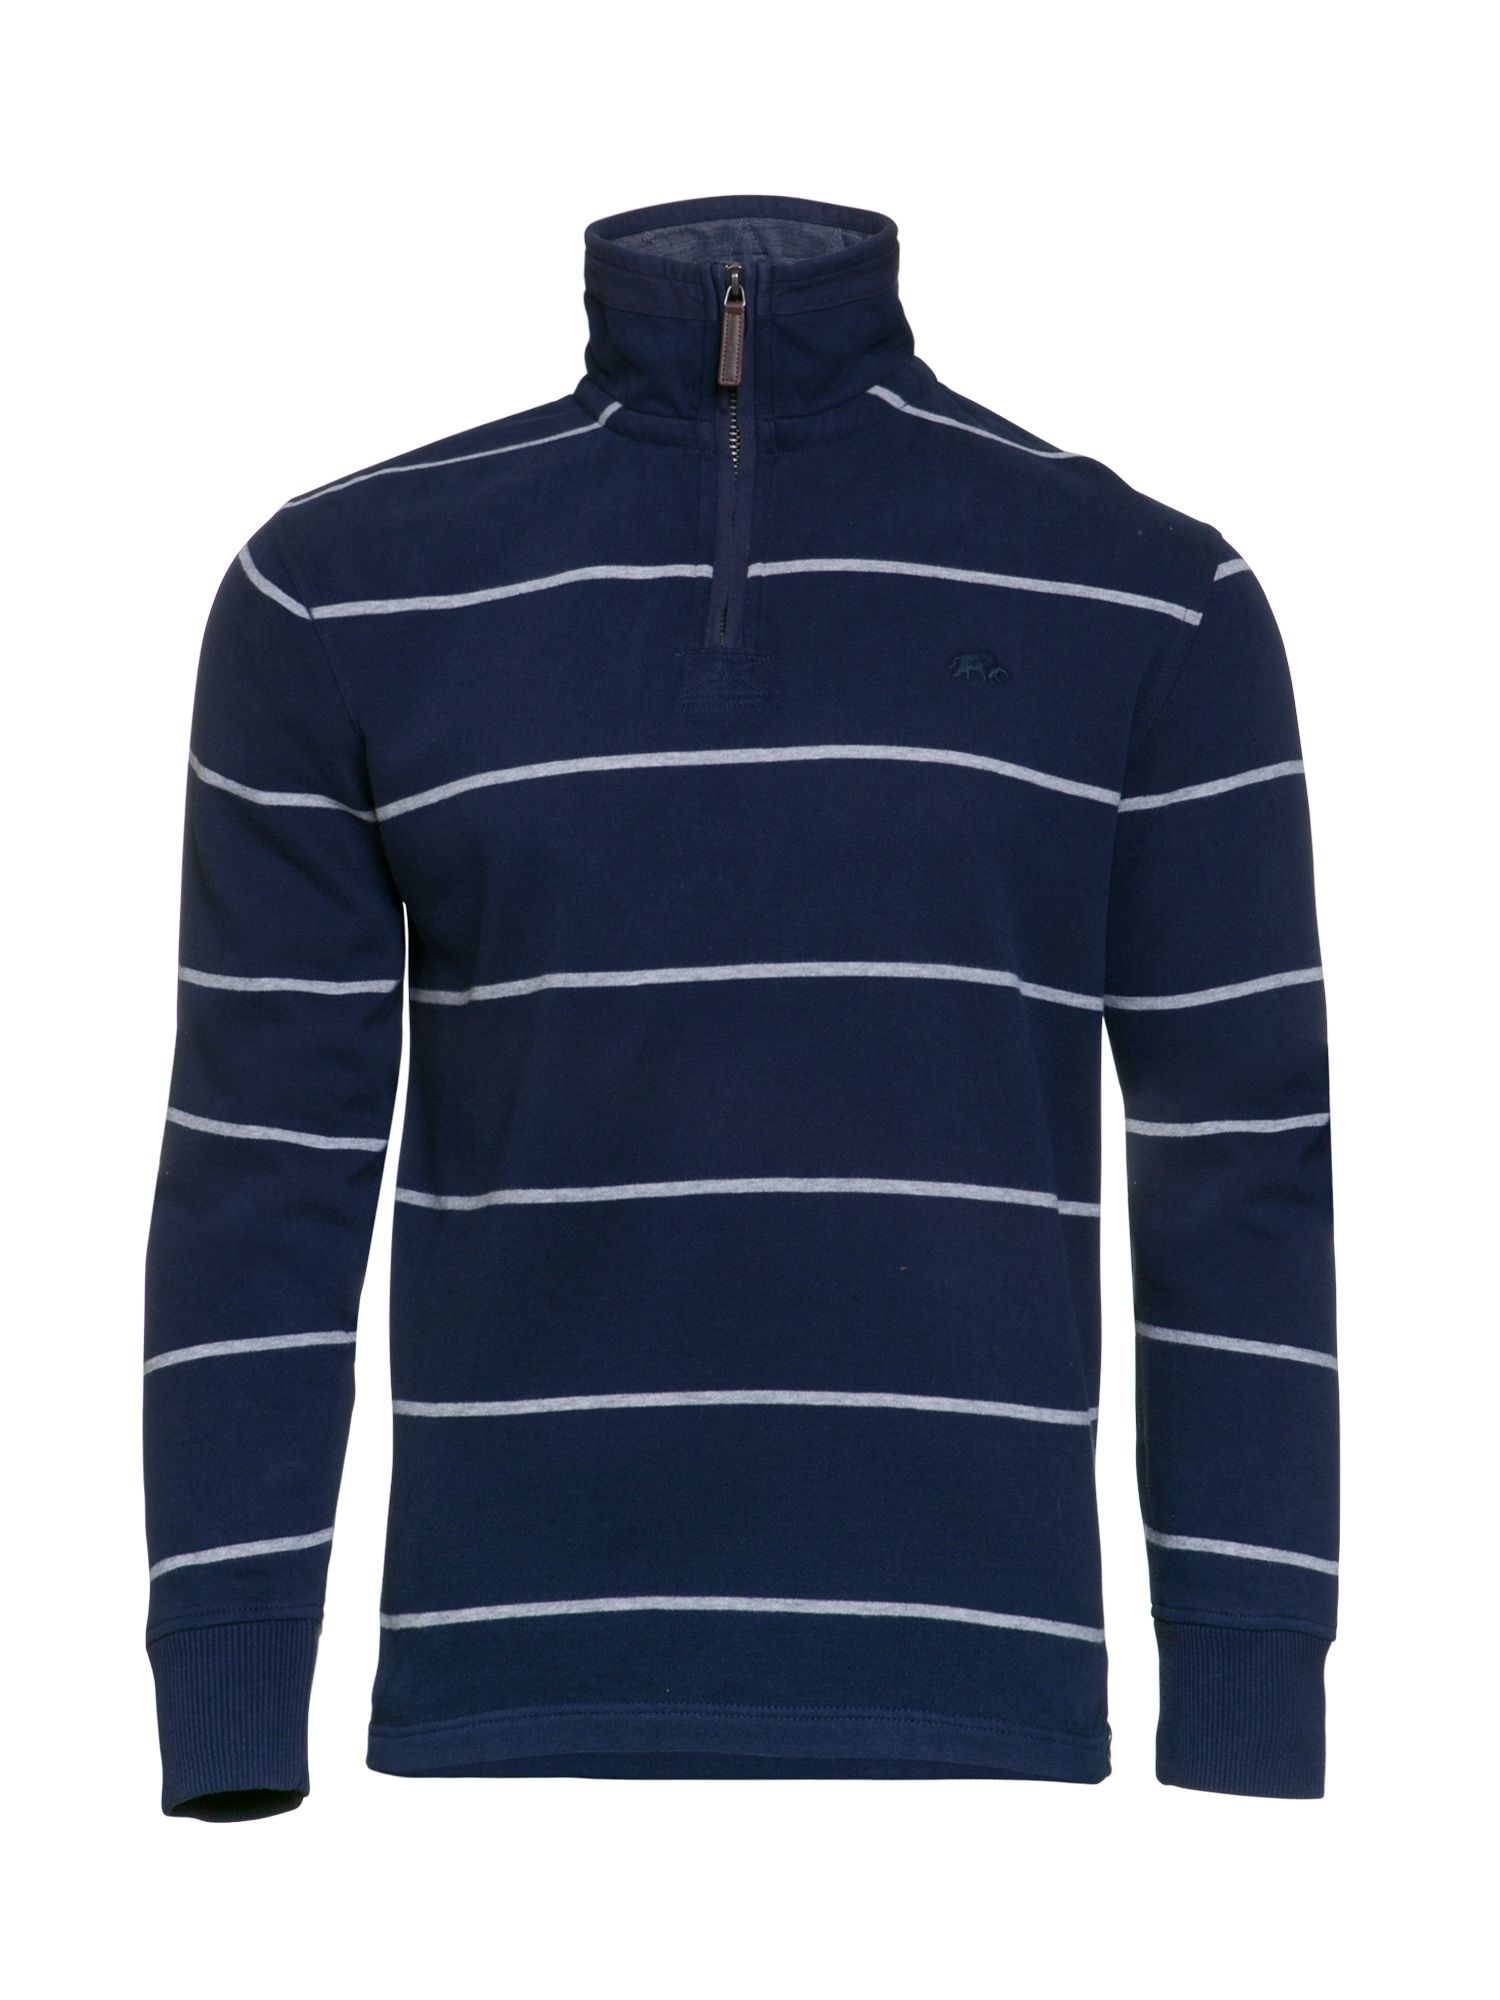 Men's Raging Bull Stripe Jersey Quarter Zip Sweater, Blue